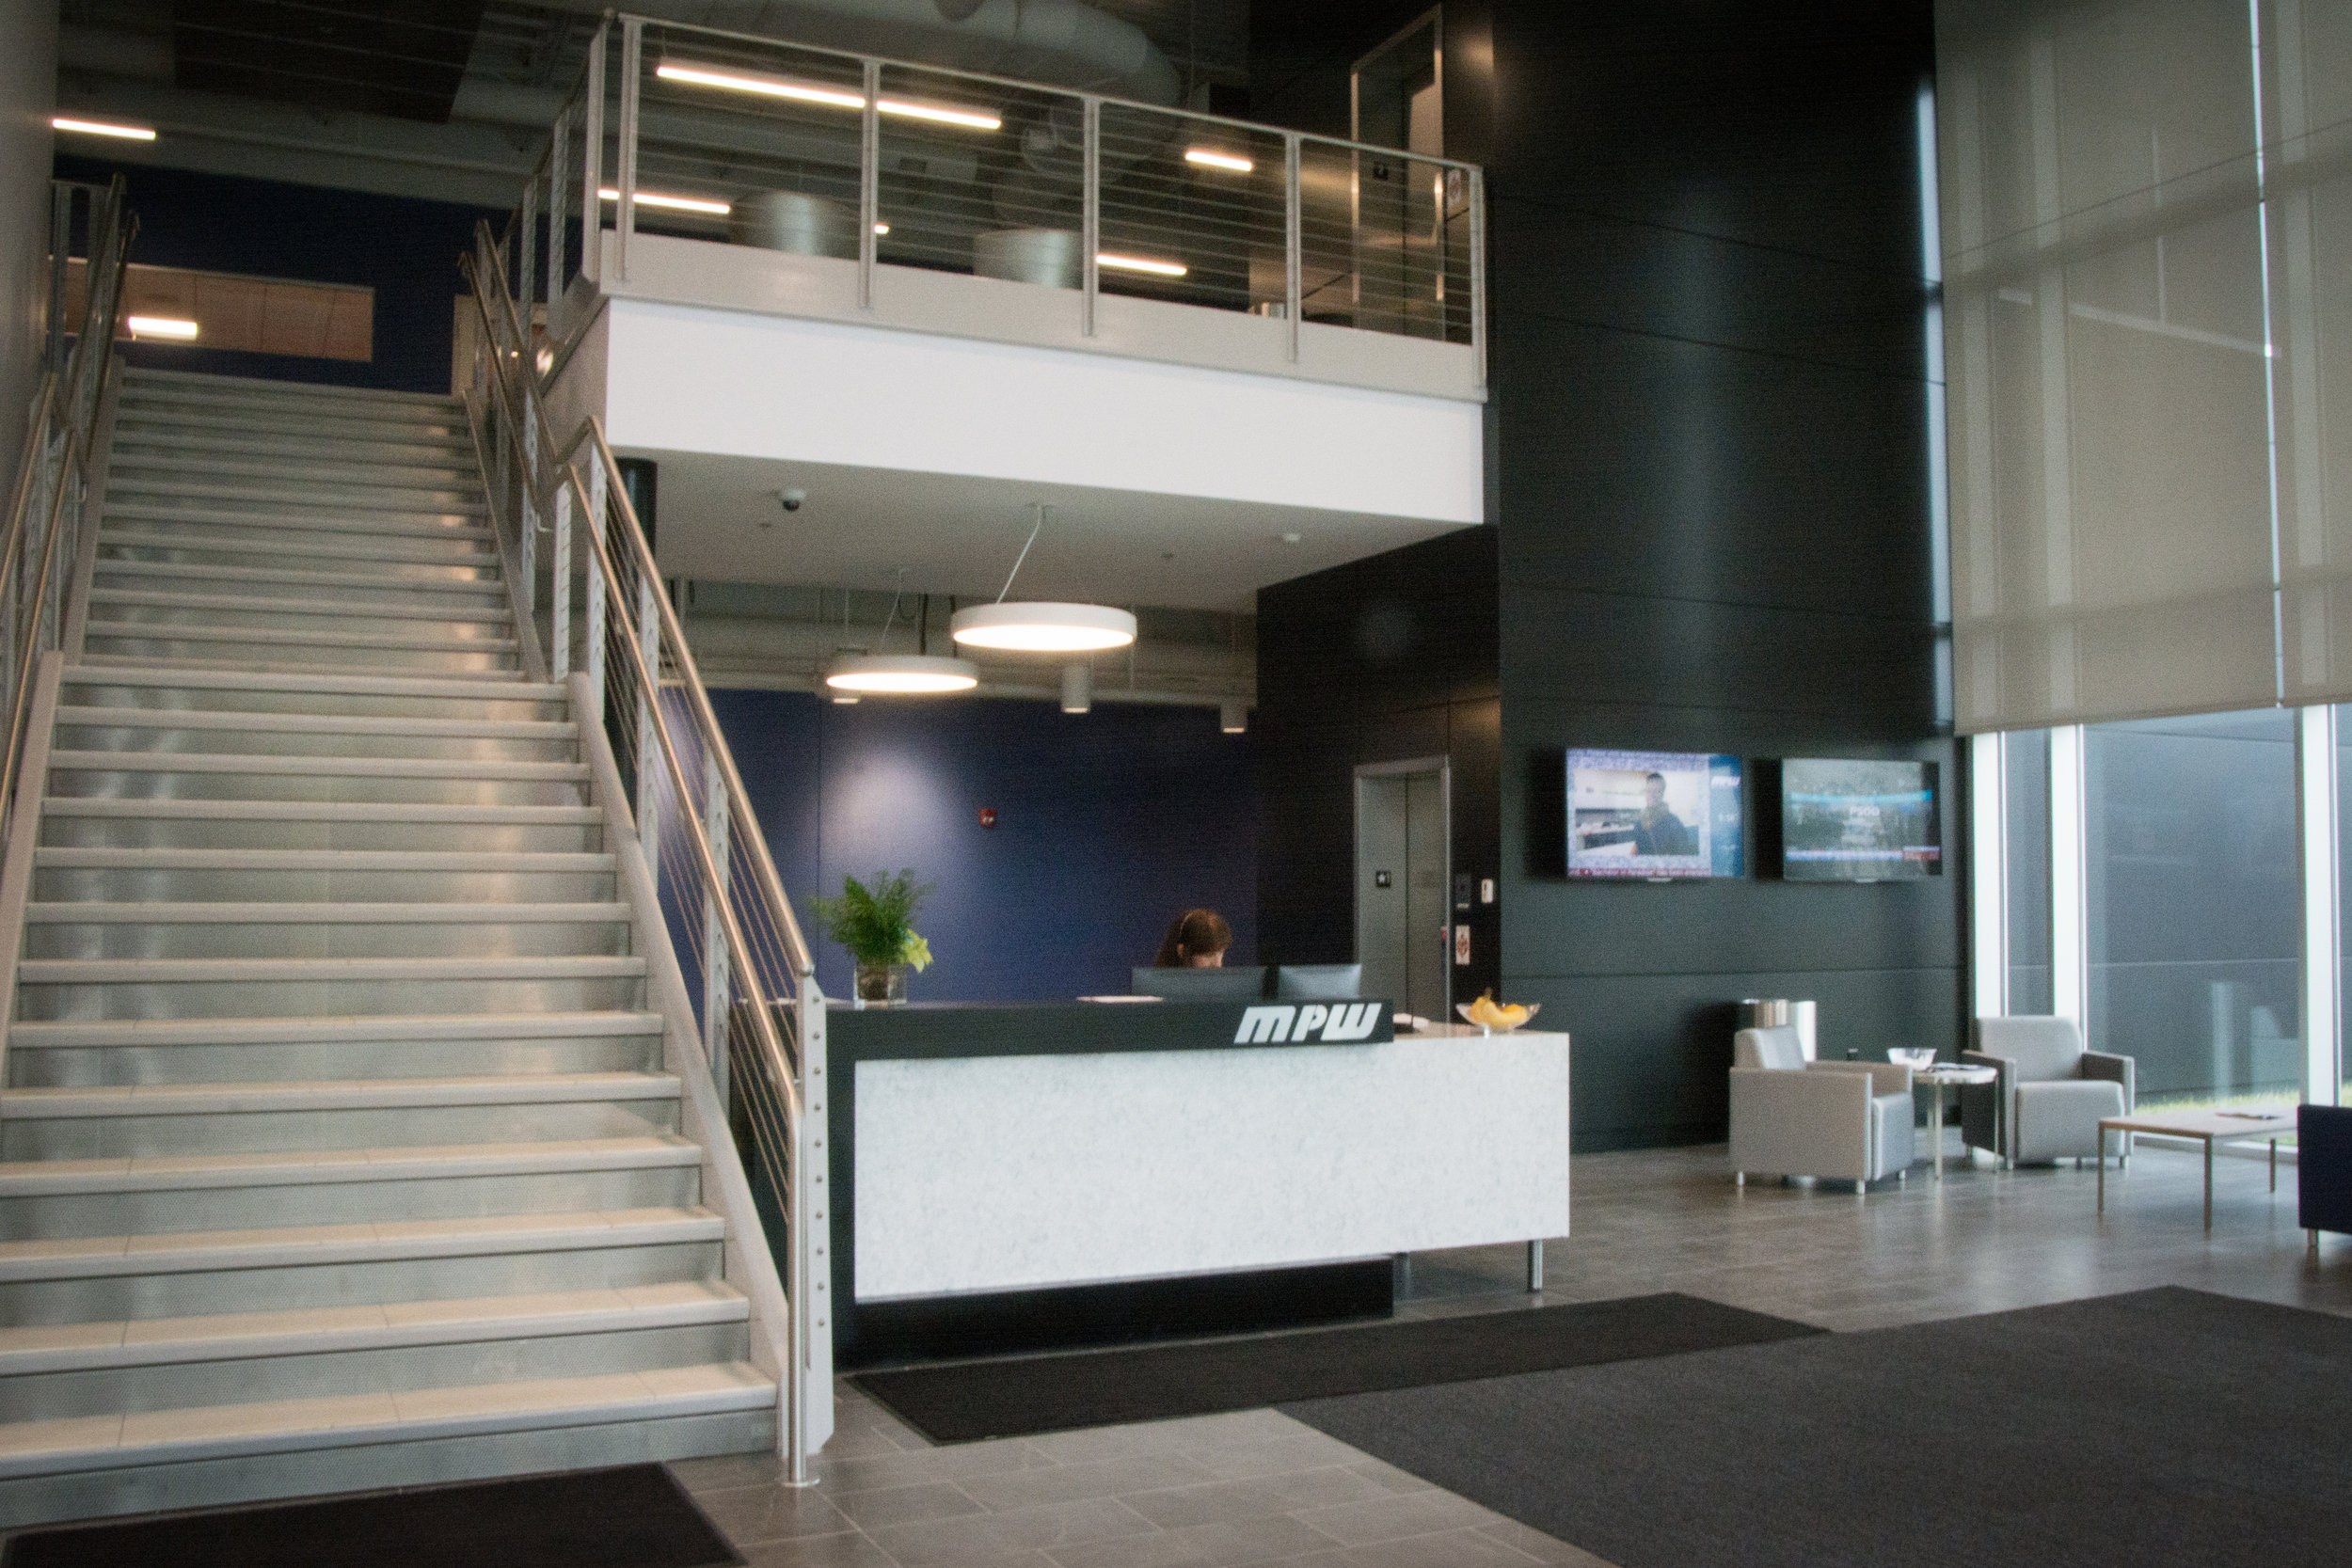 Digital signage and a television greet staff and guests in the bright, open lobby.